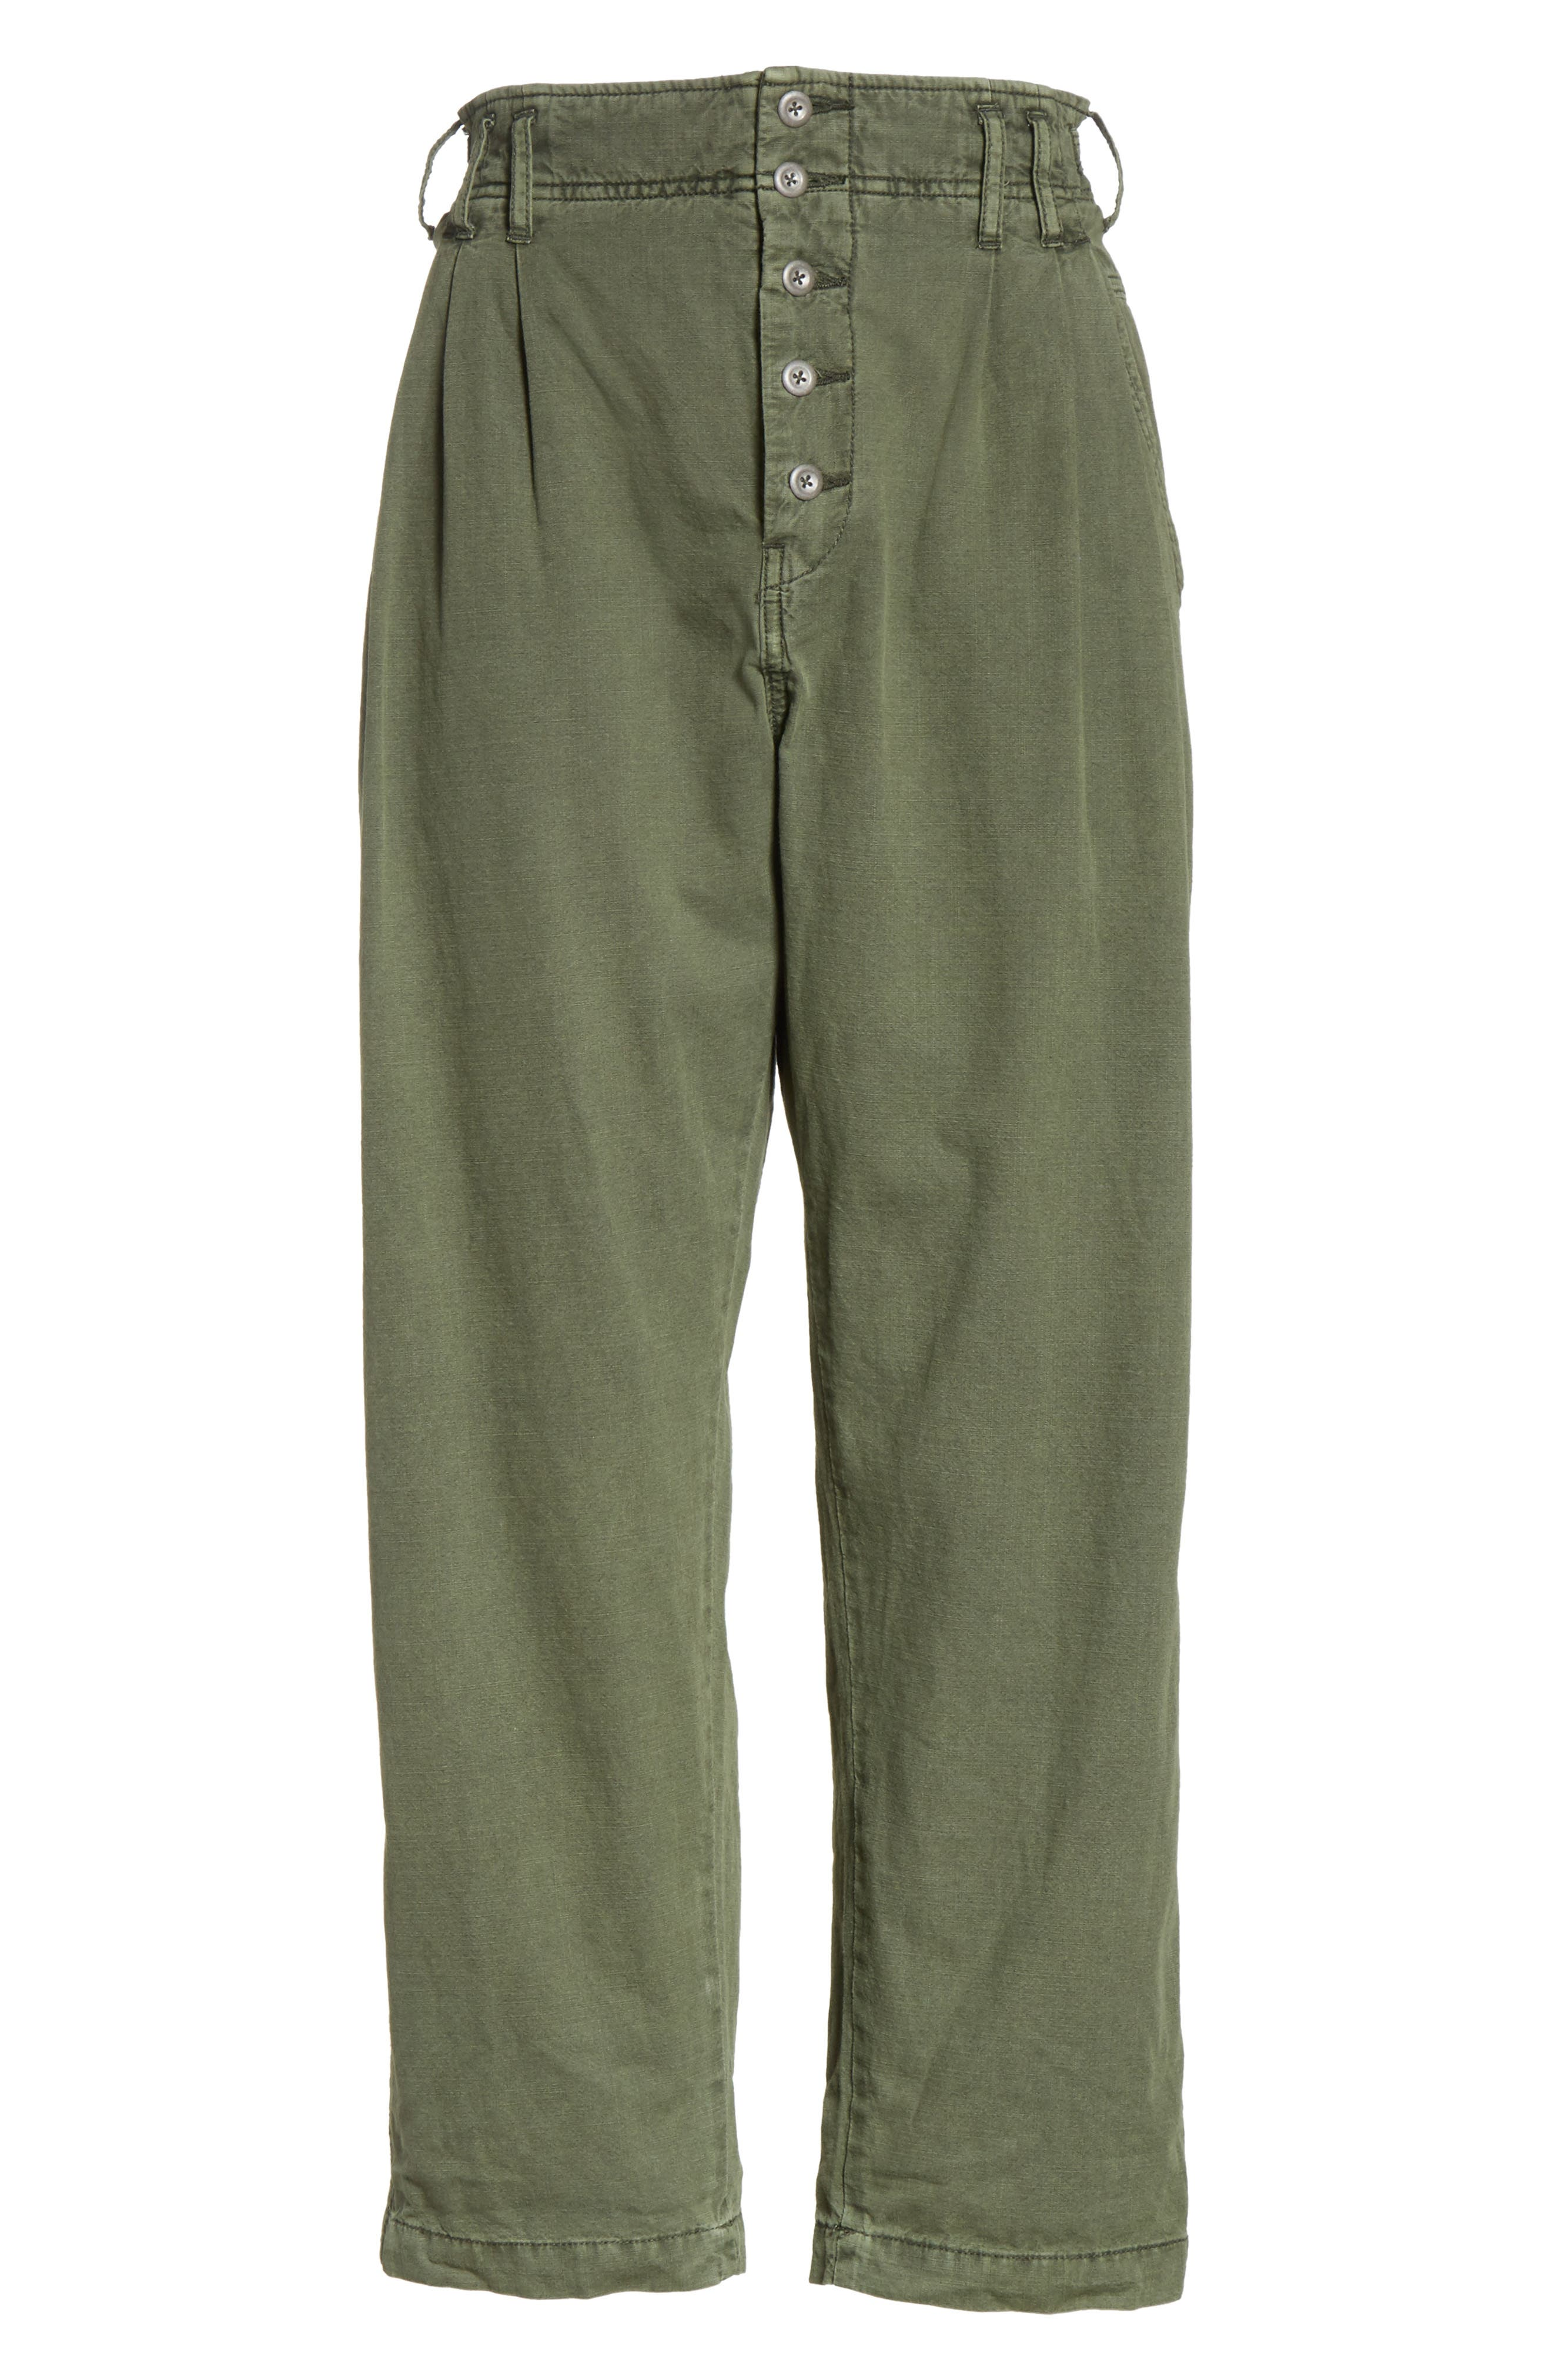 Compass Star Trousers,                             Alternate thumbnail 6, color,                             328